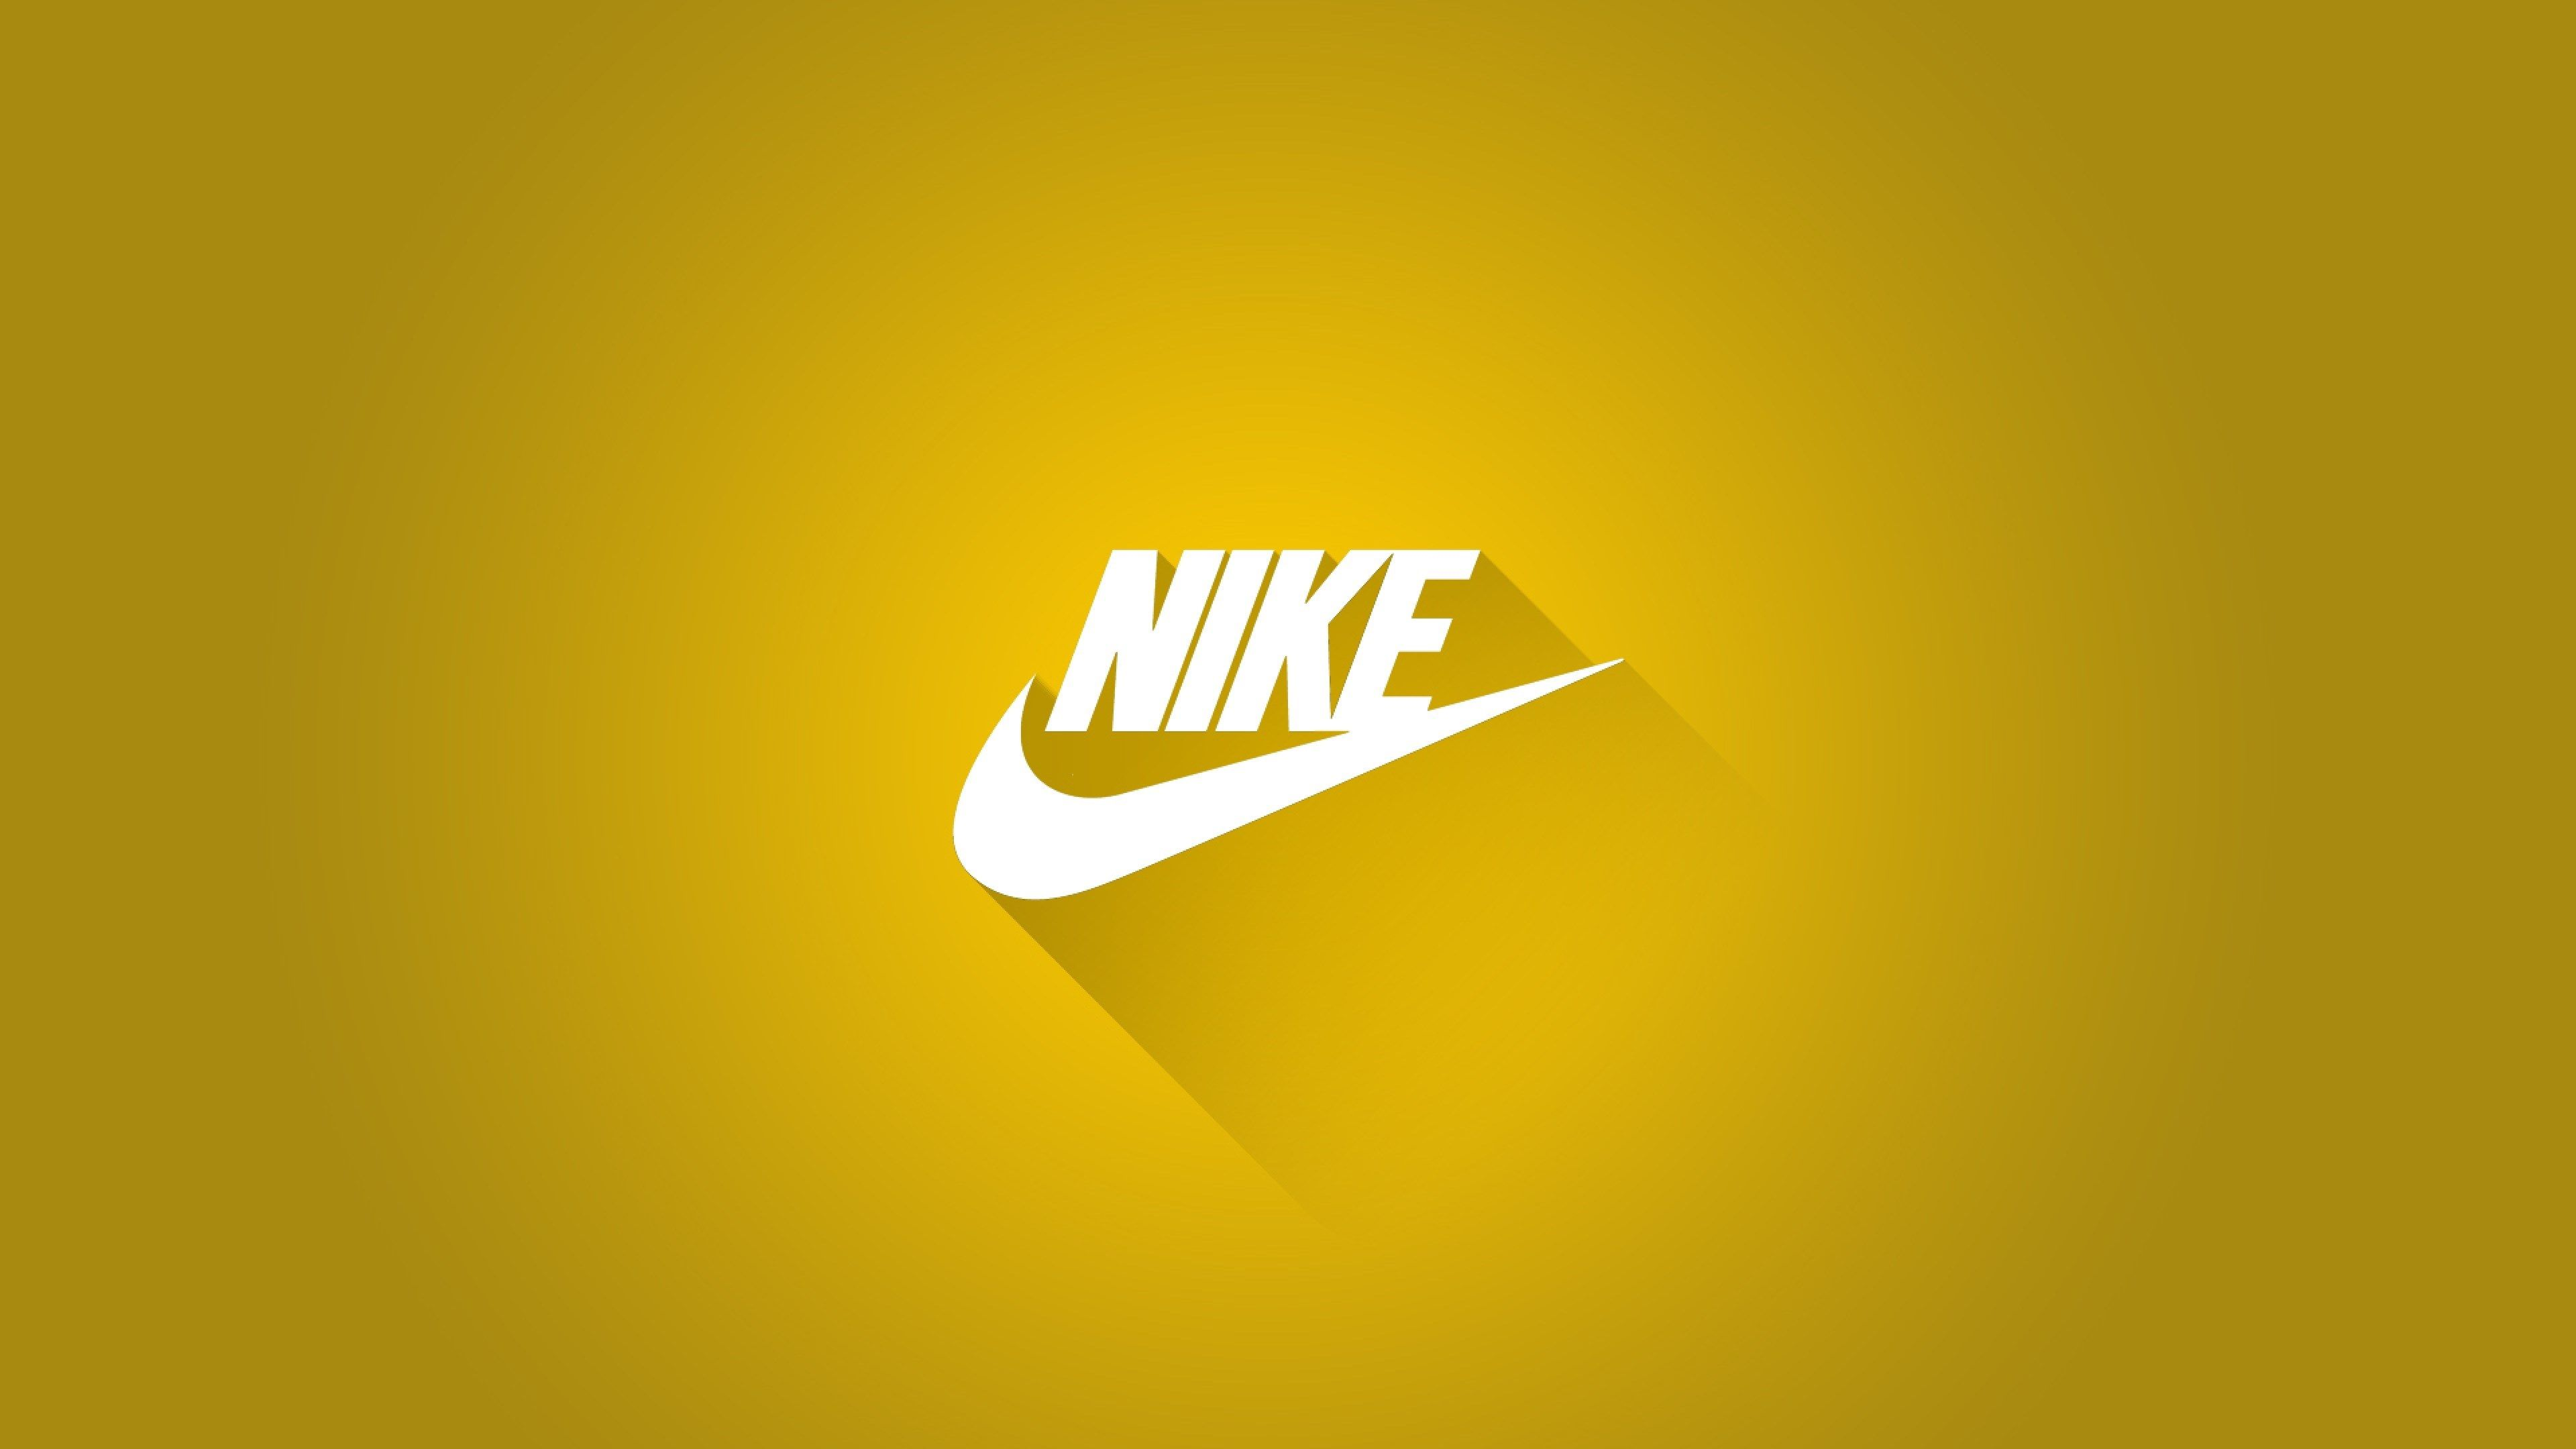 Surtido El cielo Preferencia  3840x2160 nike 4k wallpaper free download for pc | Nike logo wallpapers,  Nike wallpaper, Logo wallpaper hd